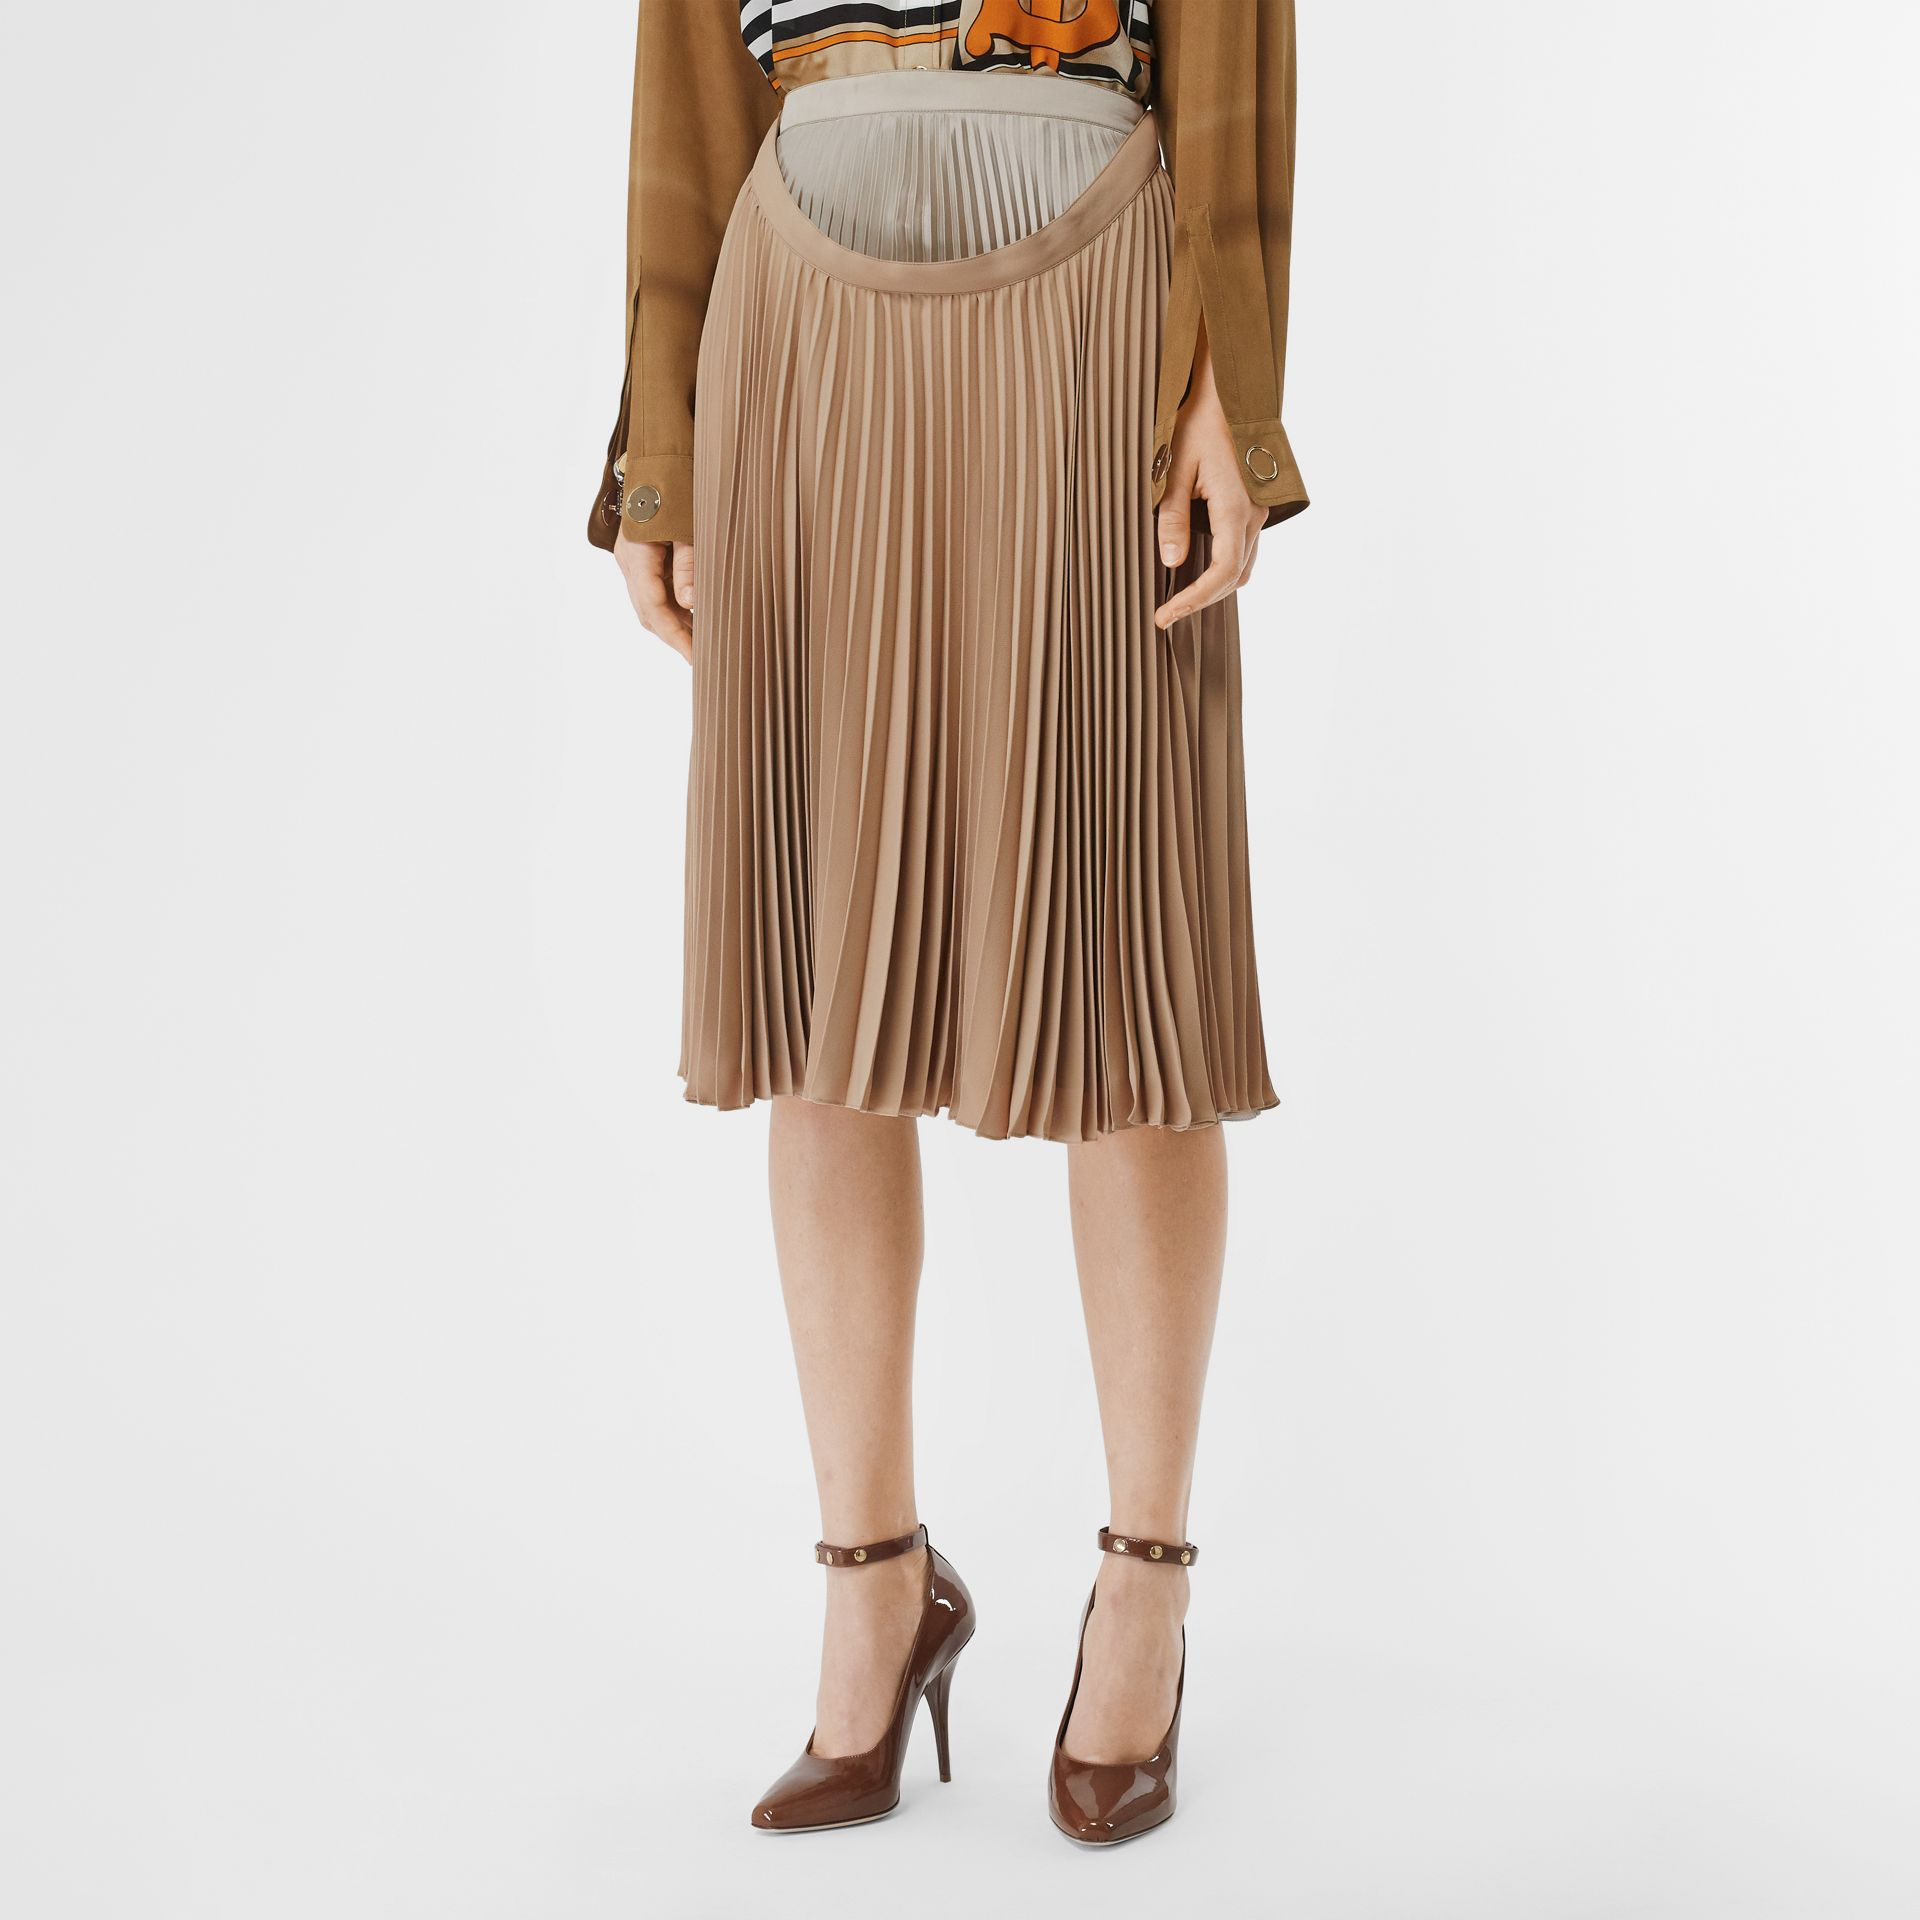 Pleated Double-waist Skirt in Sandbank - Women | Burberry Australia - gallery image 4